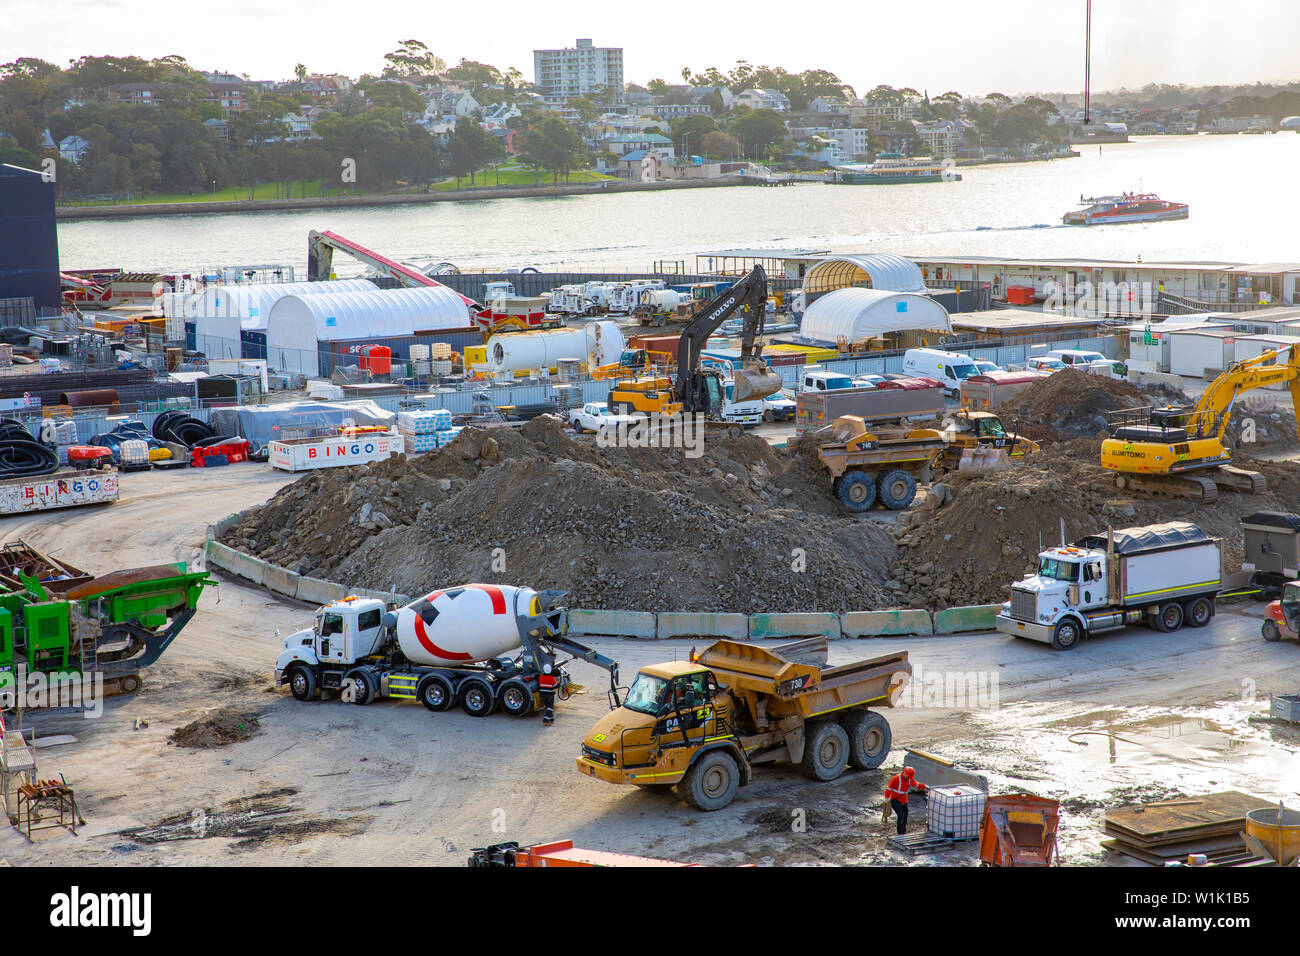 Sydney construction site, building work underway in the final stages of the Barangaroo development in Sydney,Australia - Stock Image